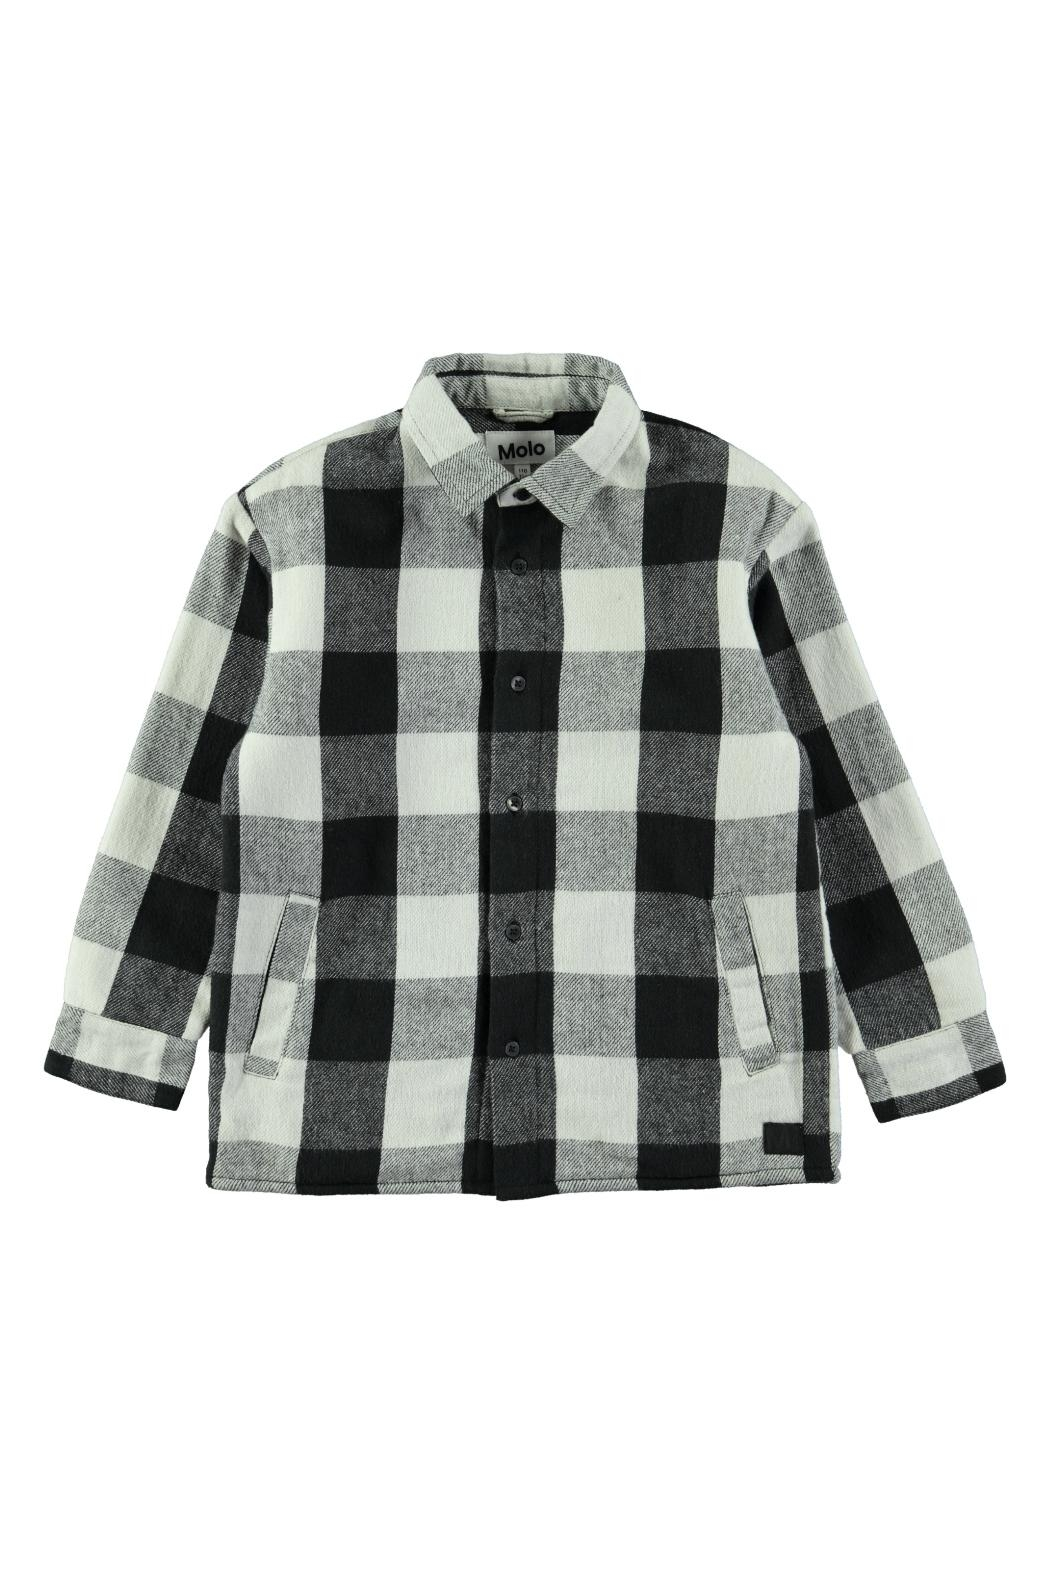 Molo White Check Shirt - Main Image